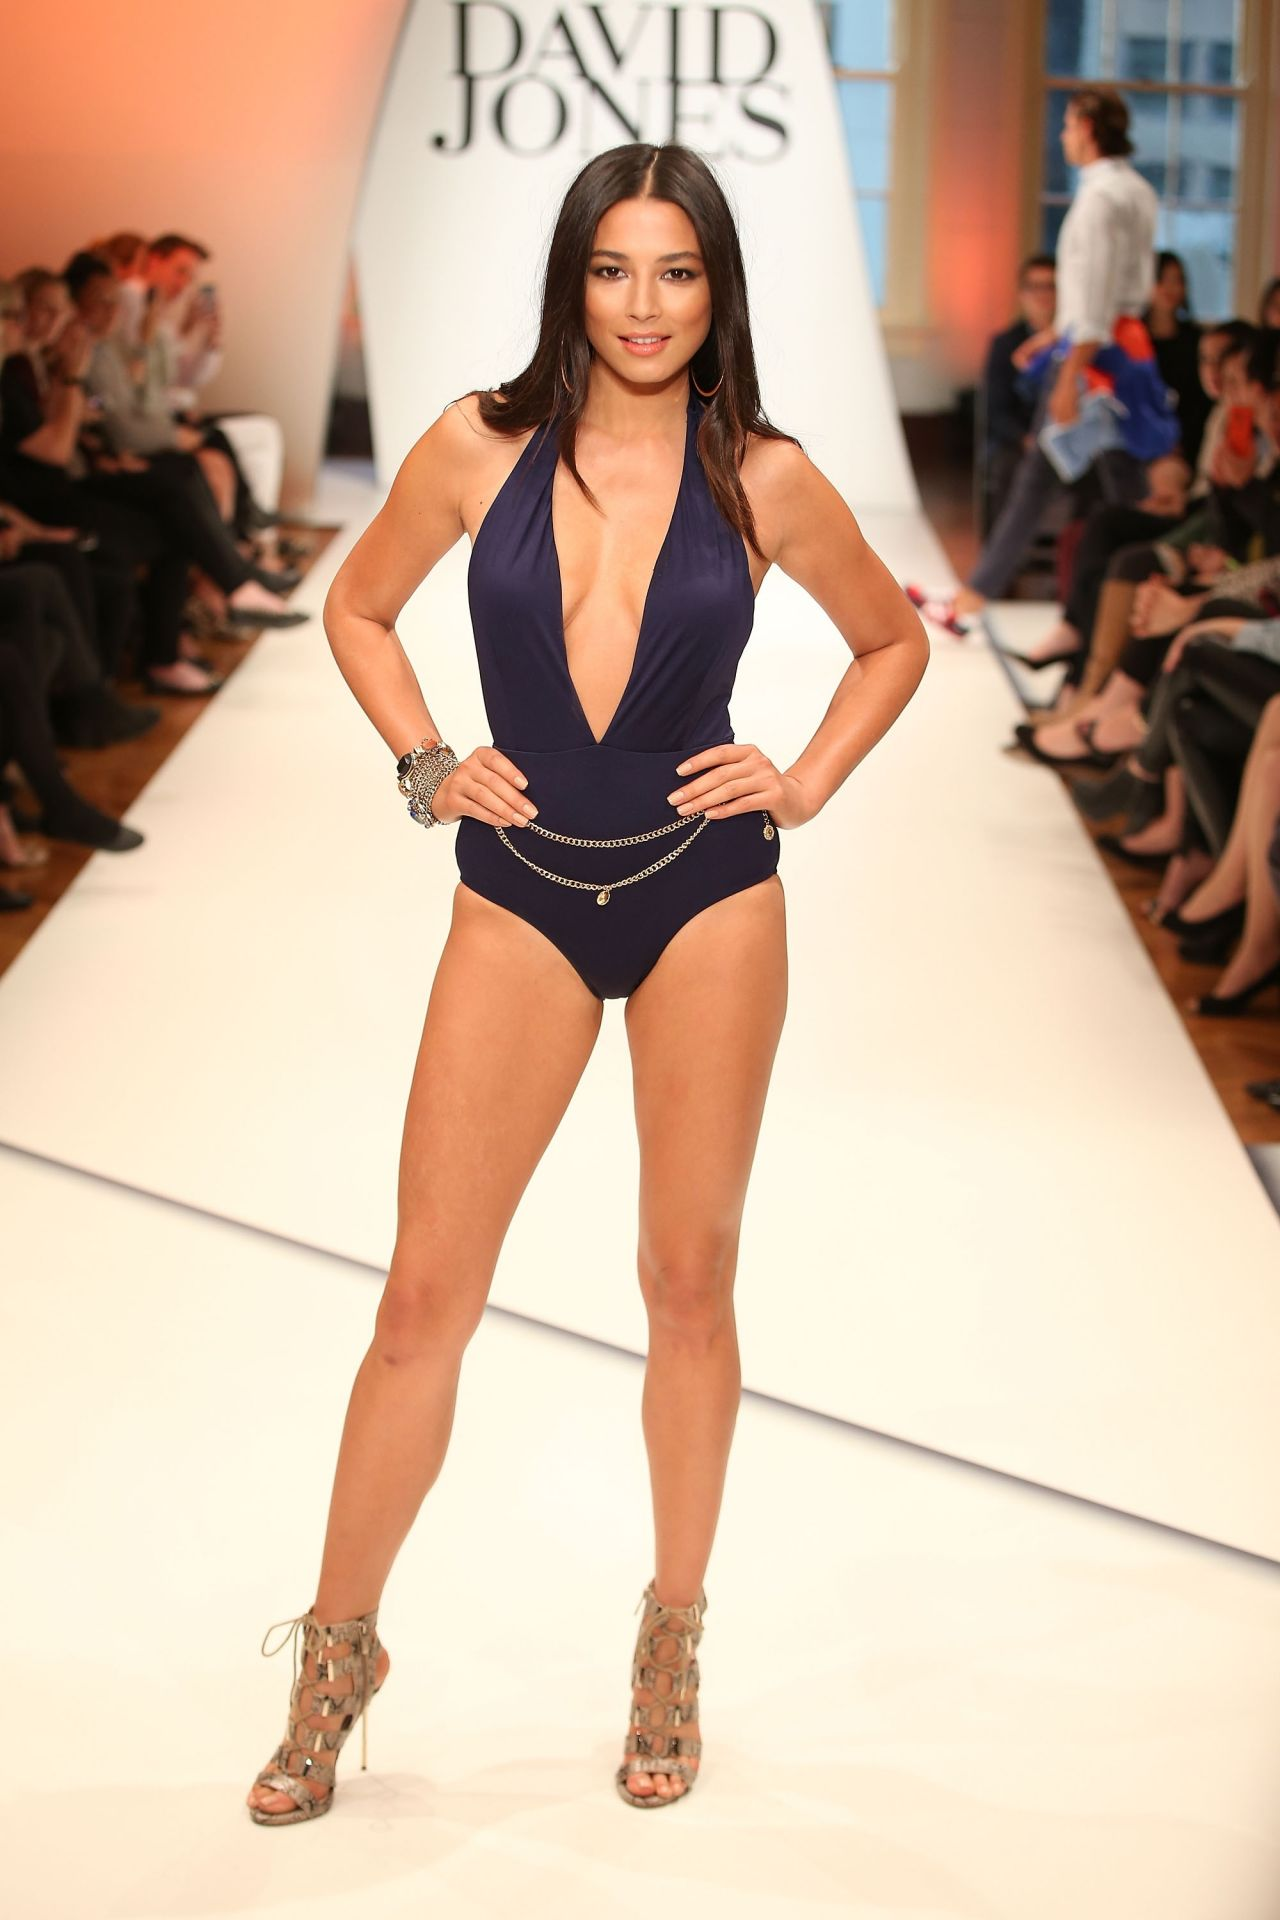 Jessica Gomes Fires Up The Catwalk - David Jones Spring/Summer 2014 Collection Launch